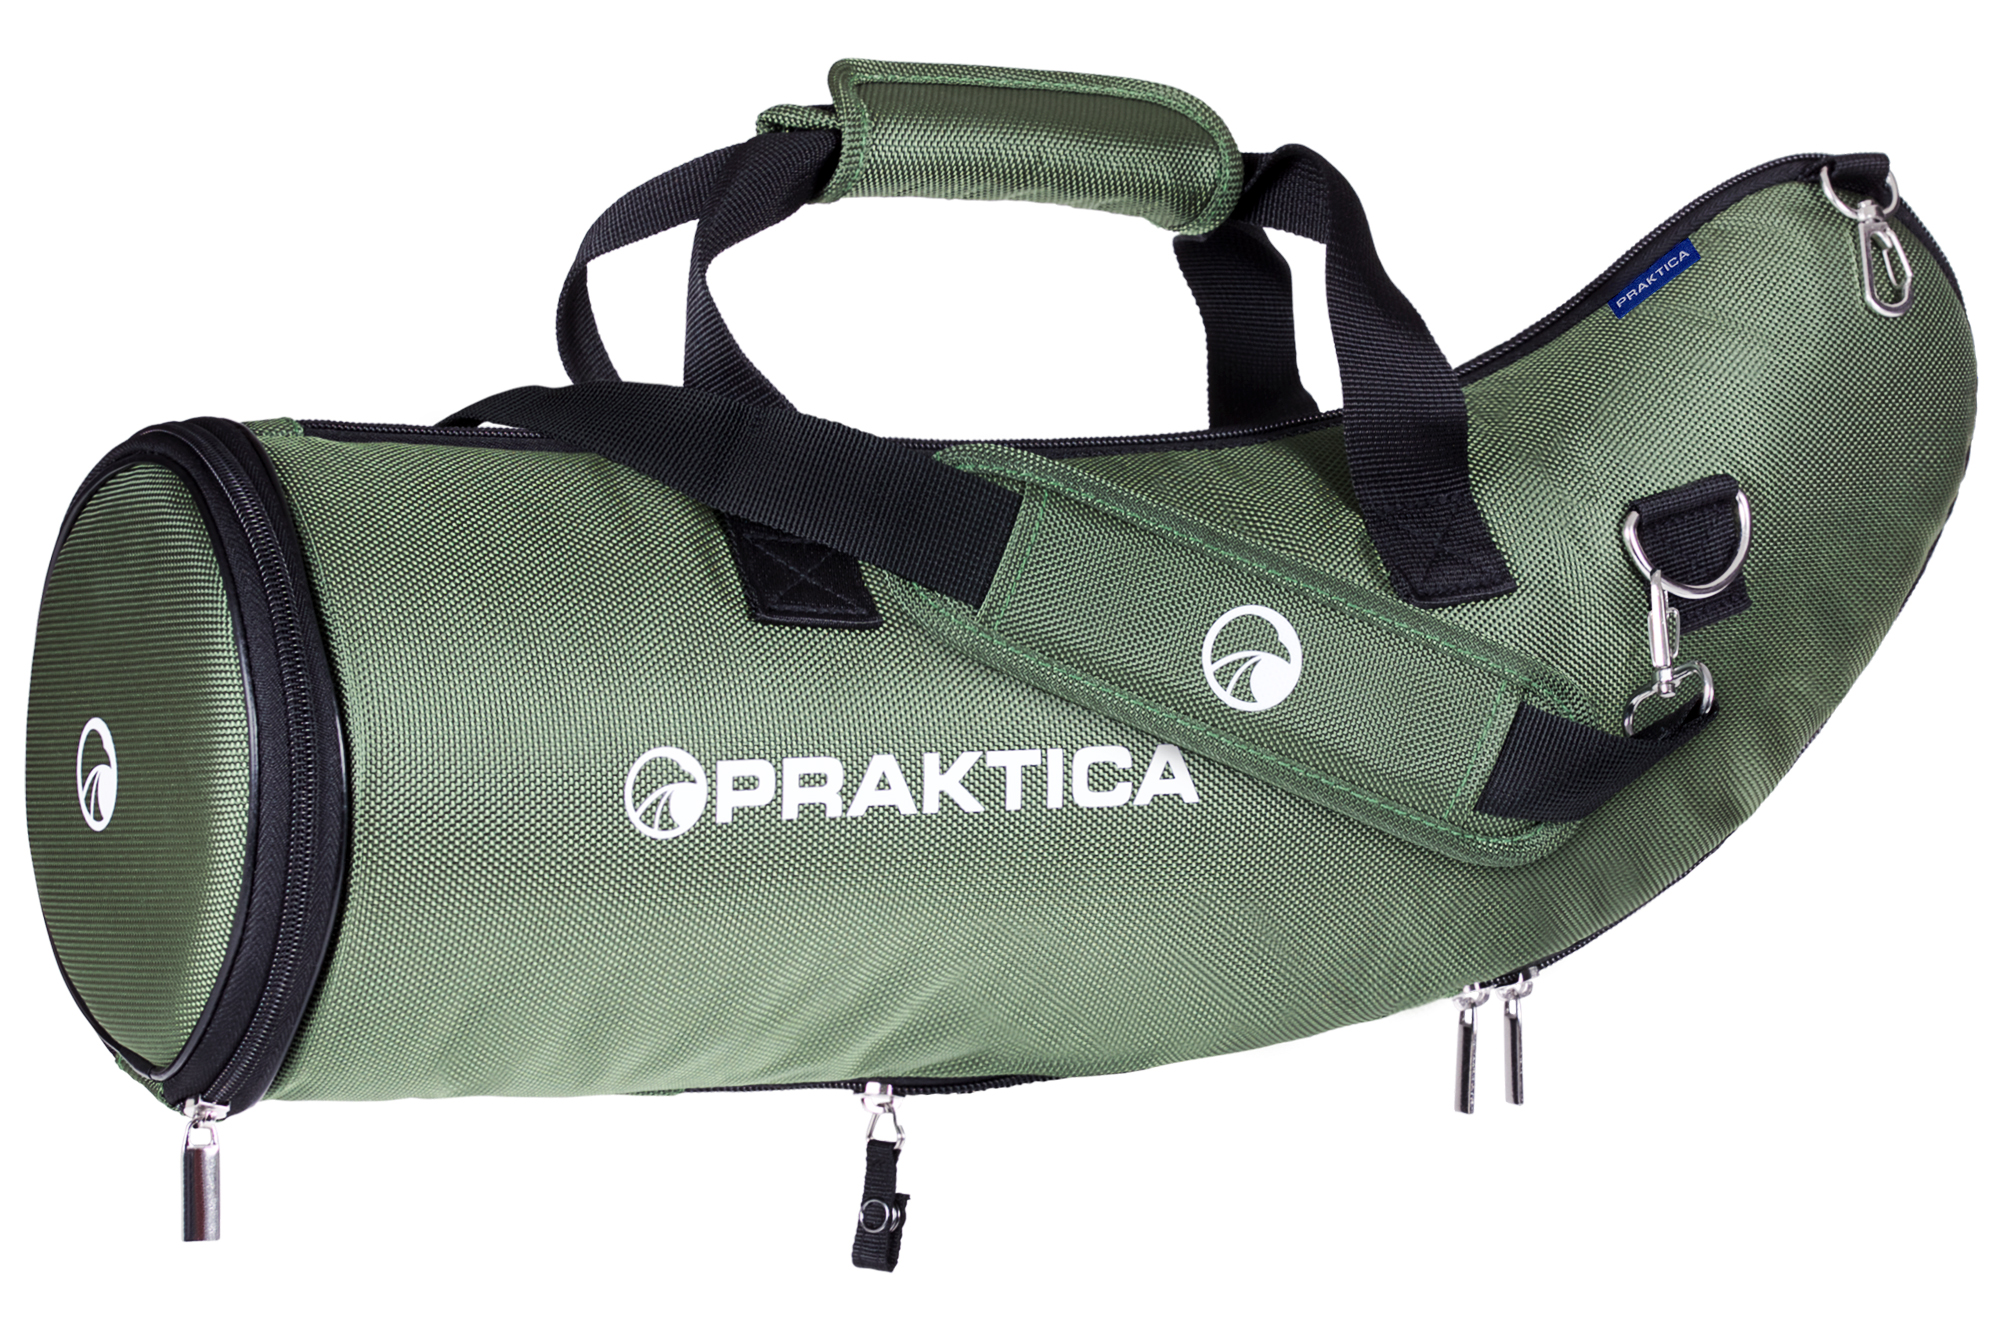 Praktica Stay-on Spotting Scope Case Fully Padded with Sling Strap